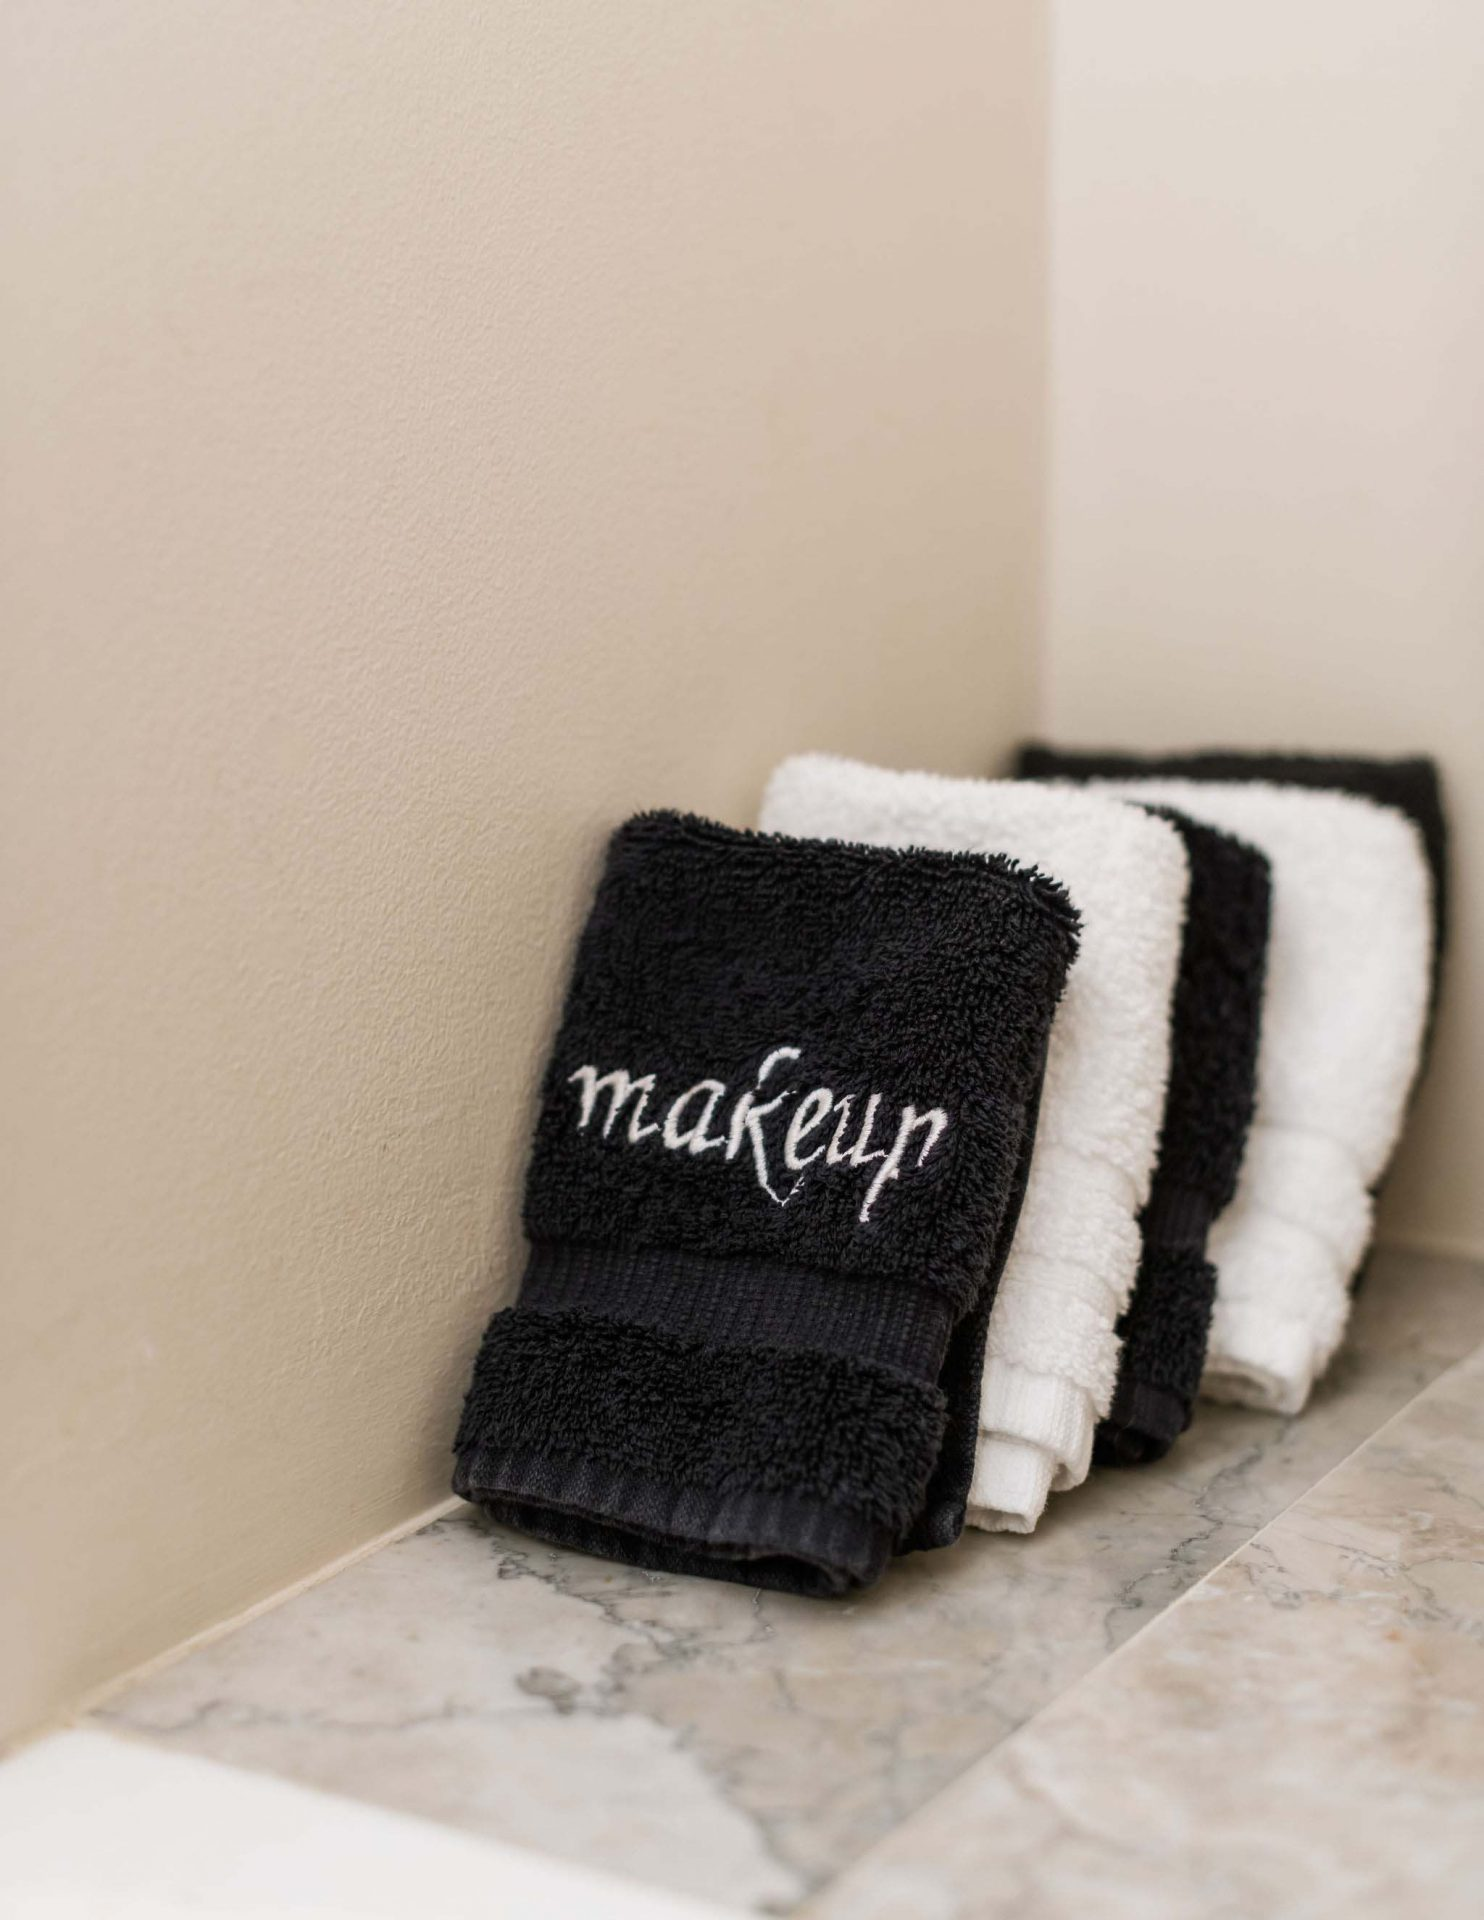 Five black and white make up removal towels arranged in one of the private bathrooms at Inn on Montford.